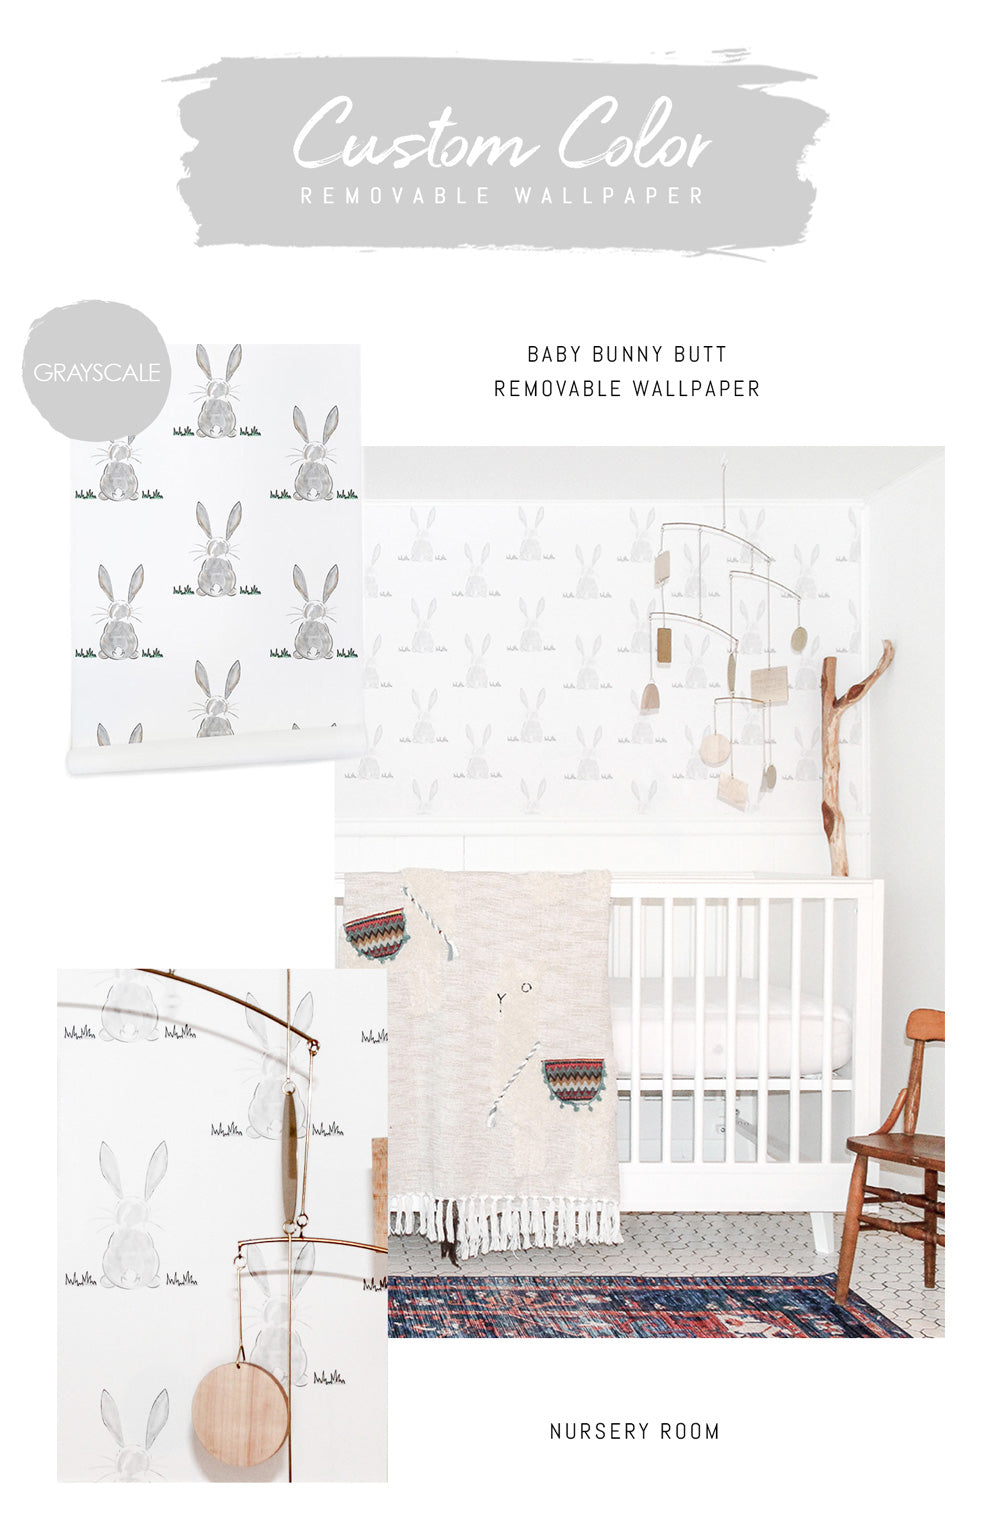 Greyscale bunny butt removable wallpaper for a boho nursery